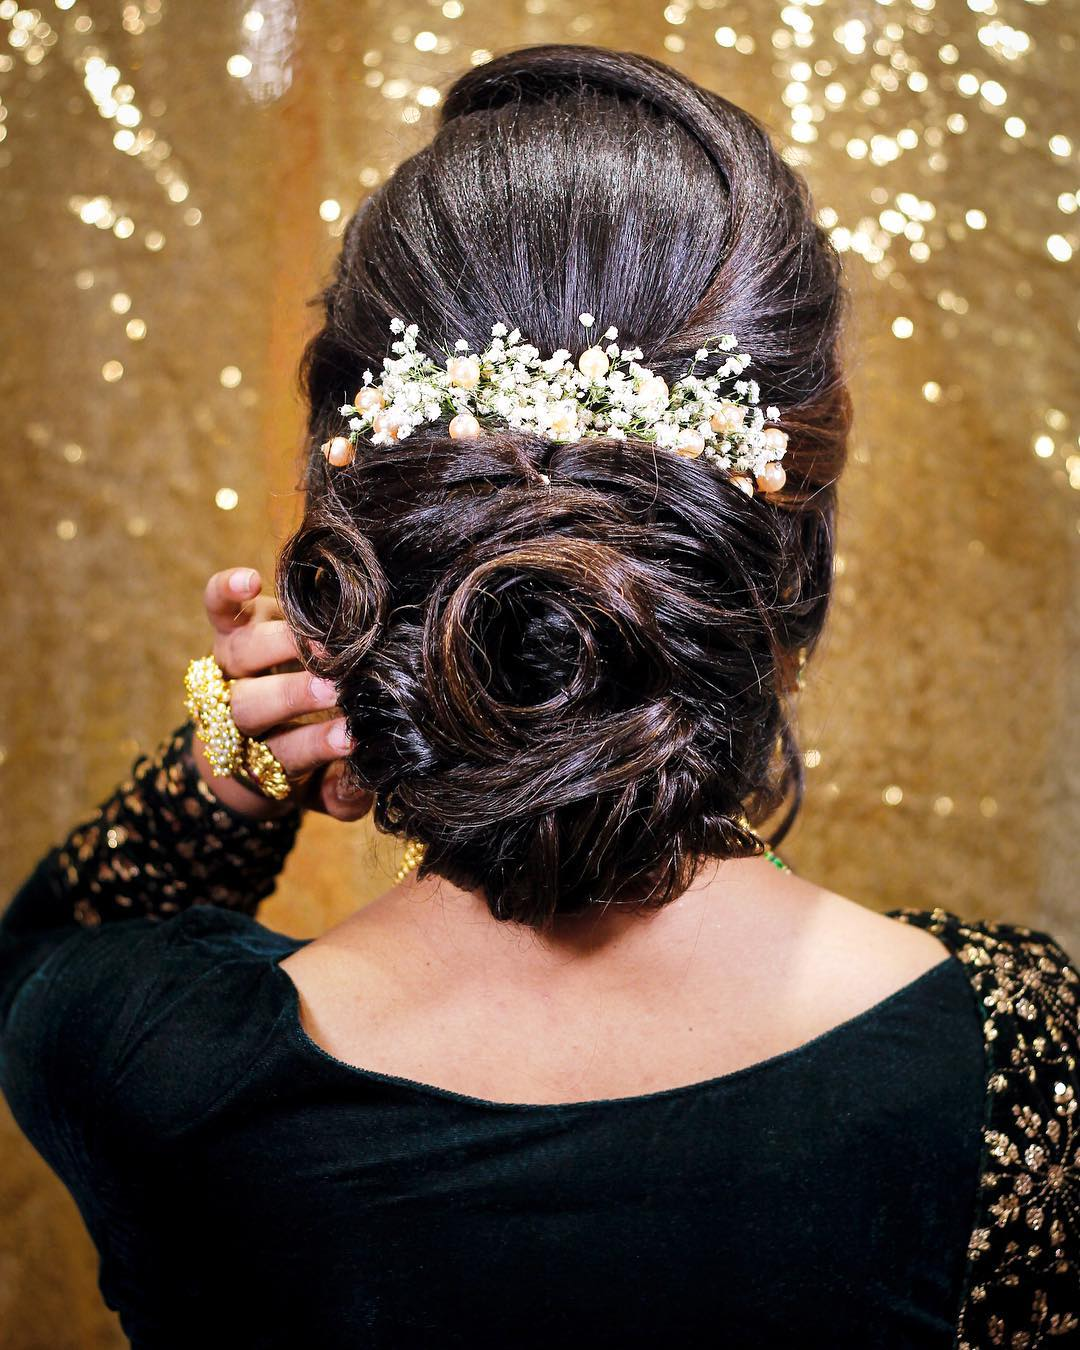 A low bun: Trending Bun Hairstyles for your Wedding Reception